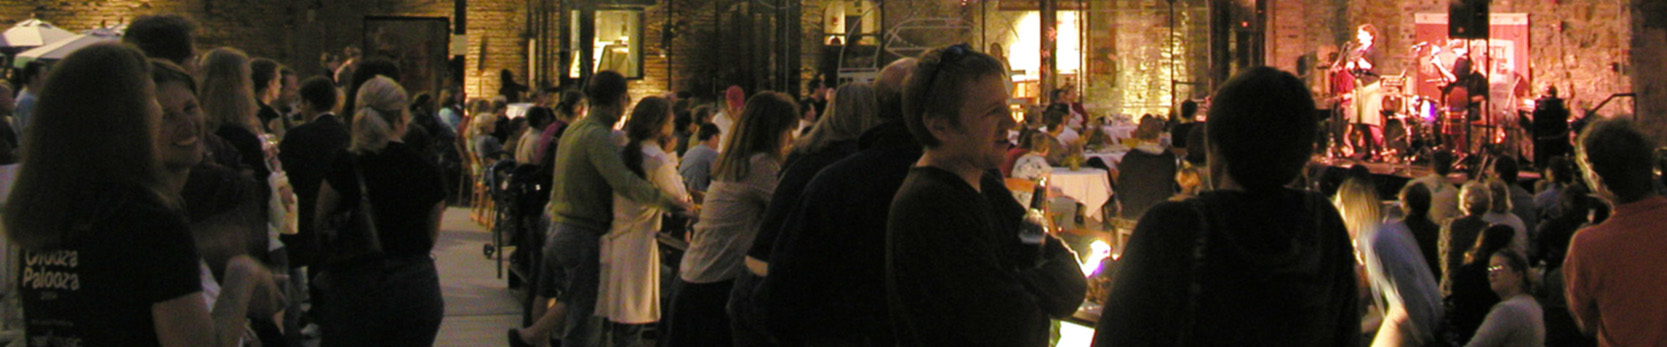 Large crowd of people watching a band play in the ruin courtyard at night.